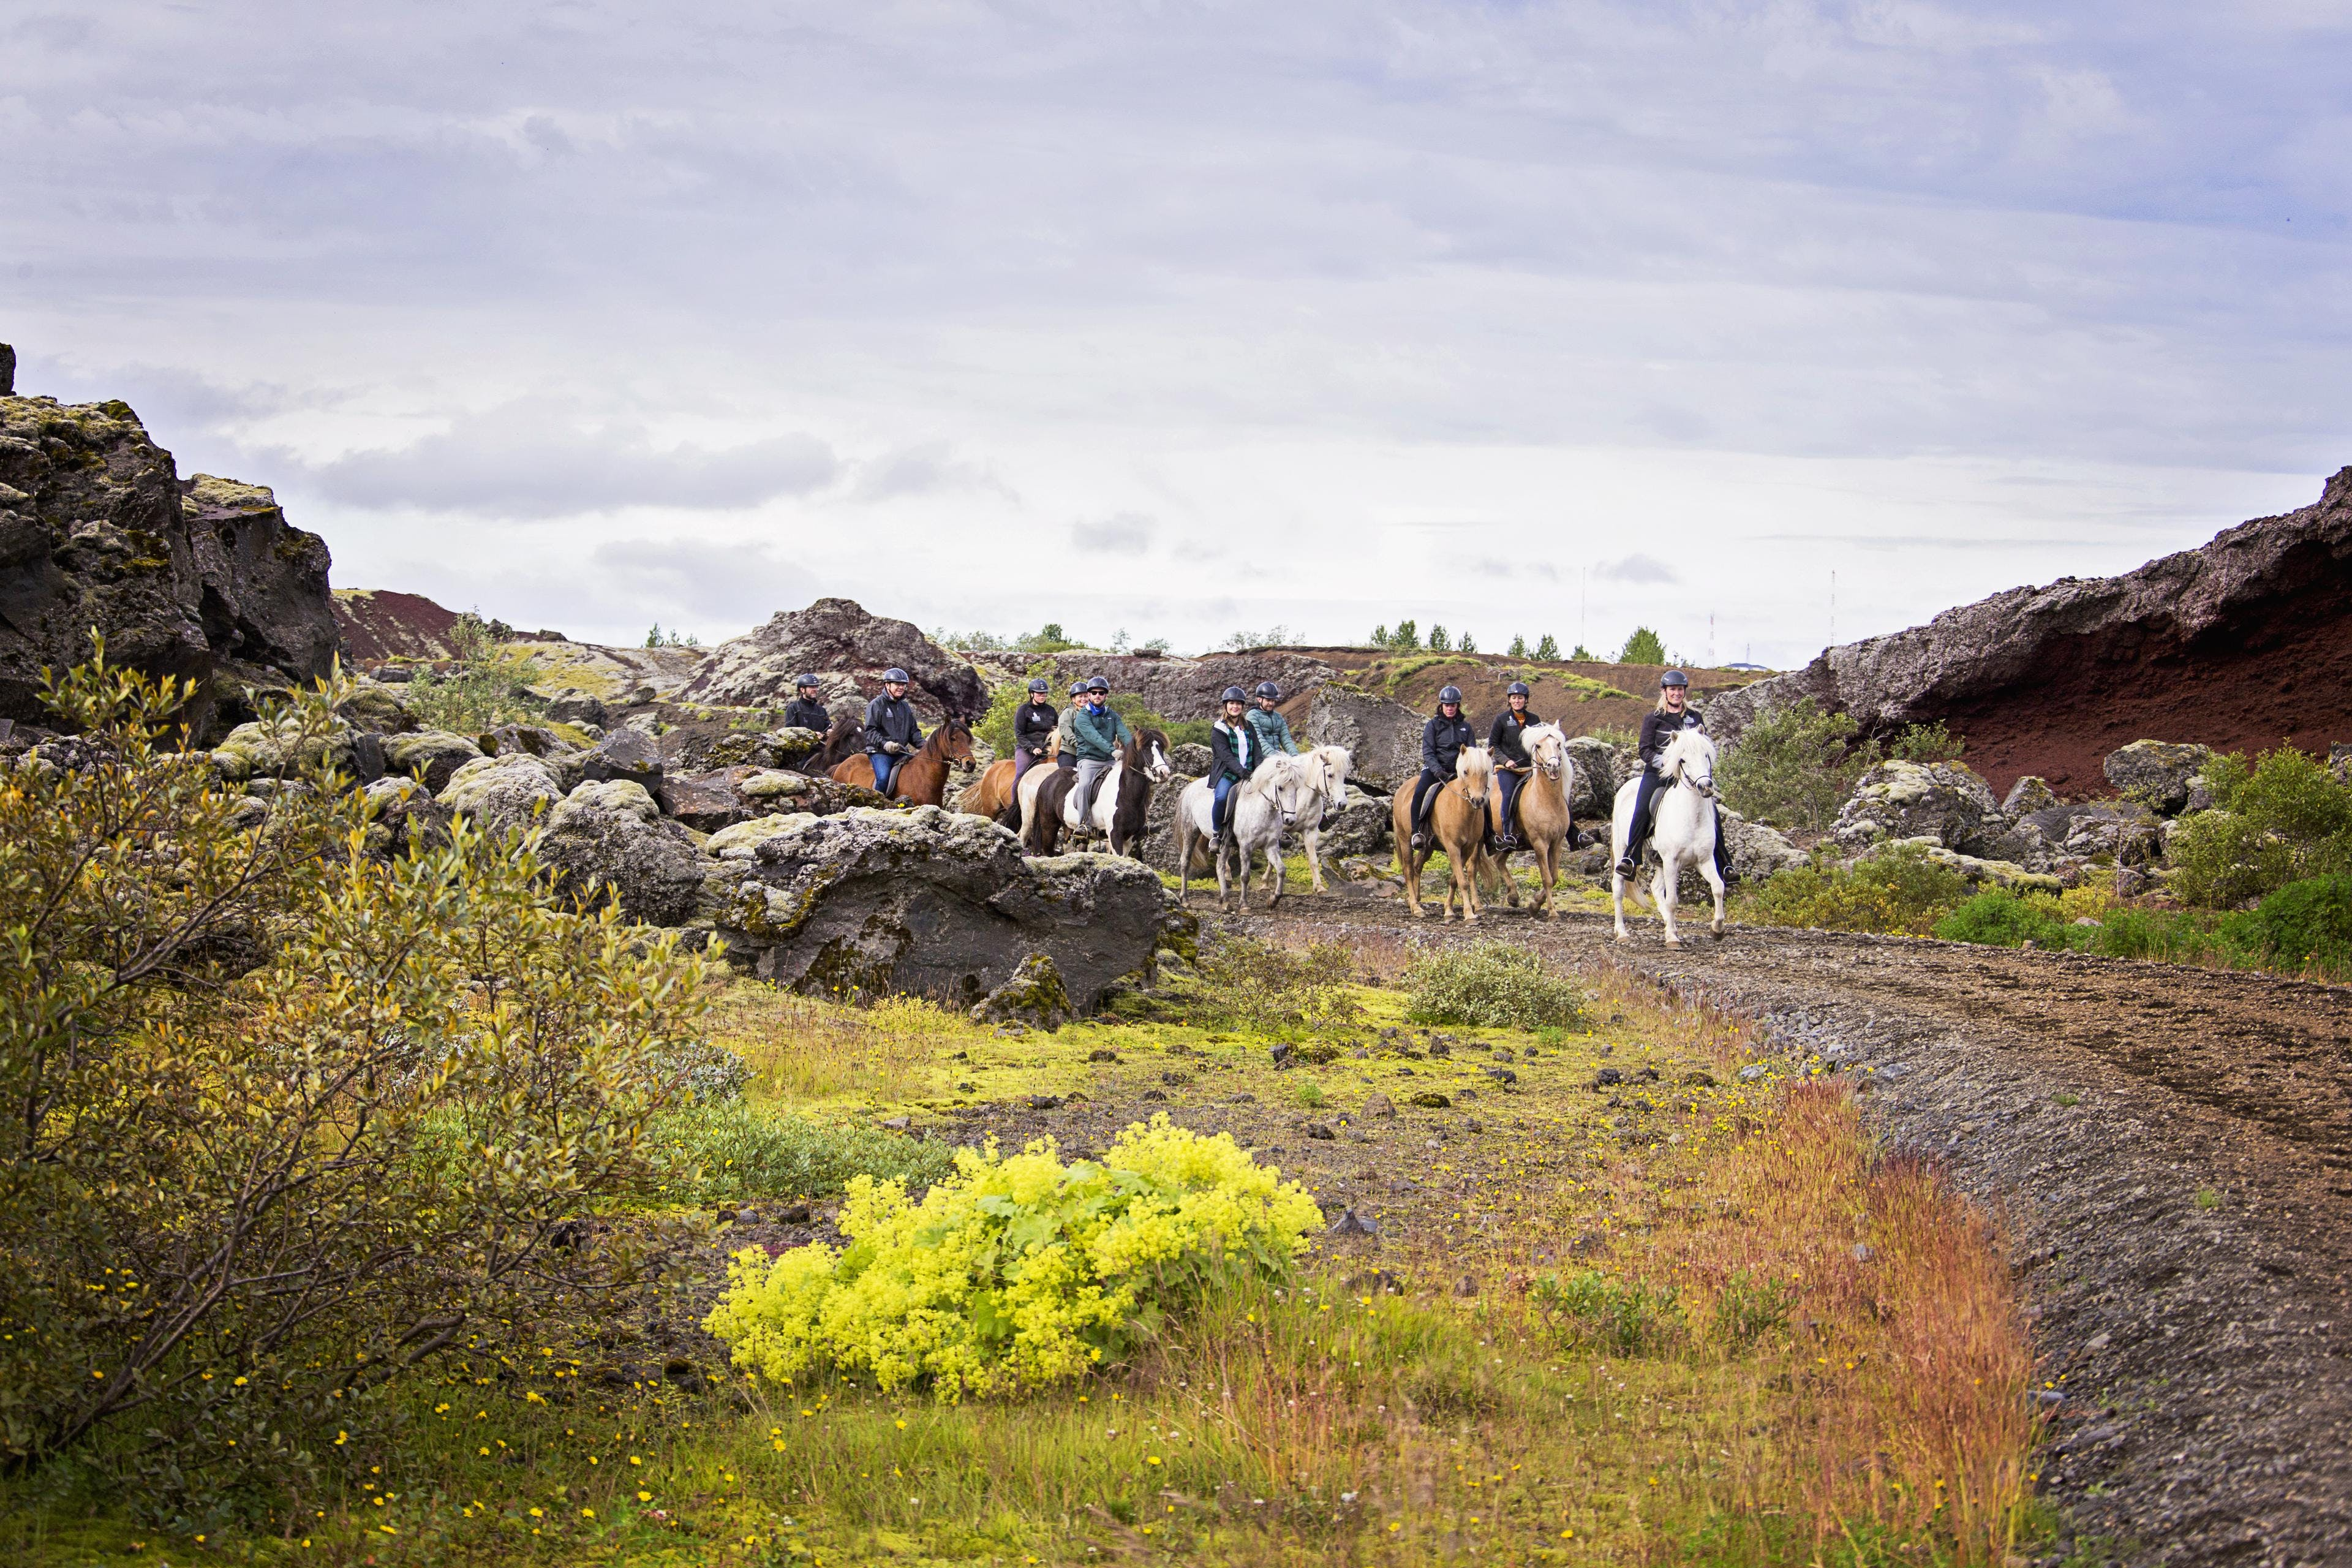 A group riding horses in Icelandic nature